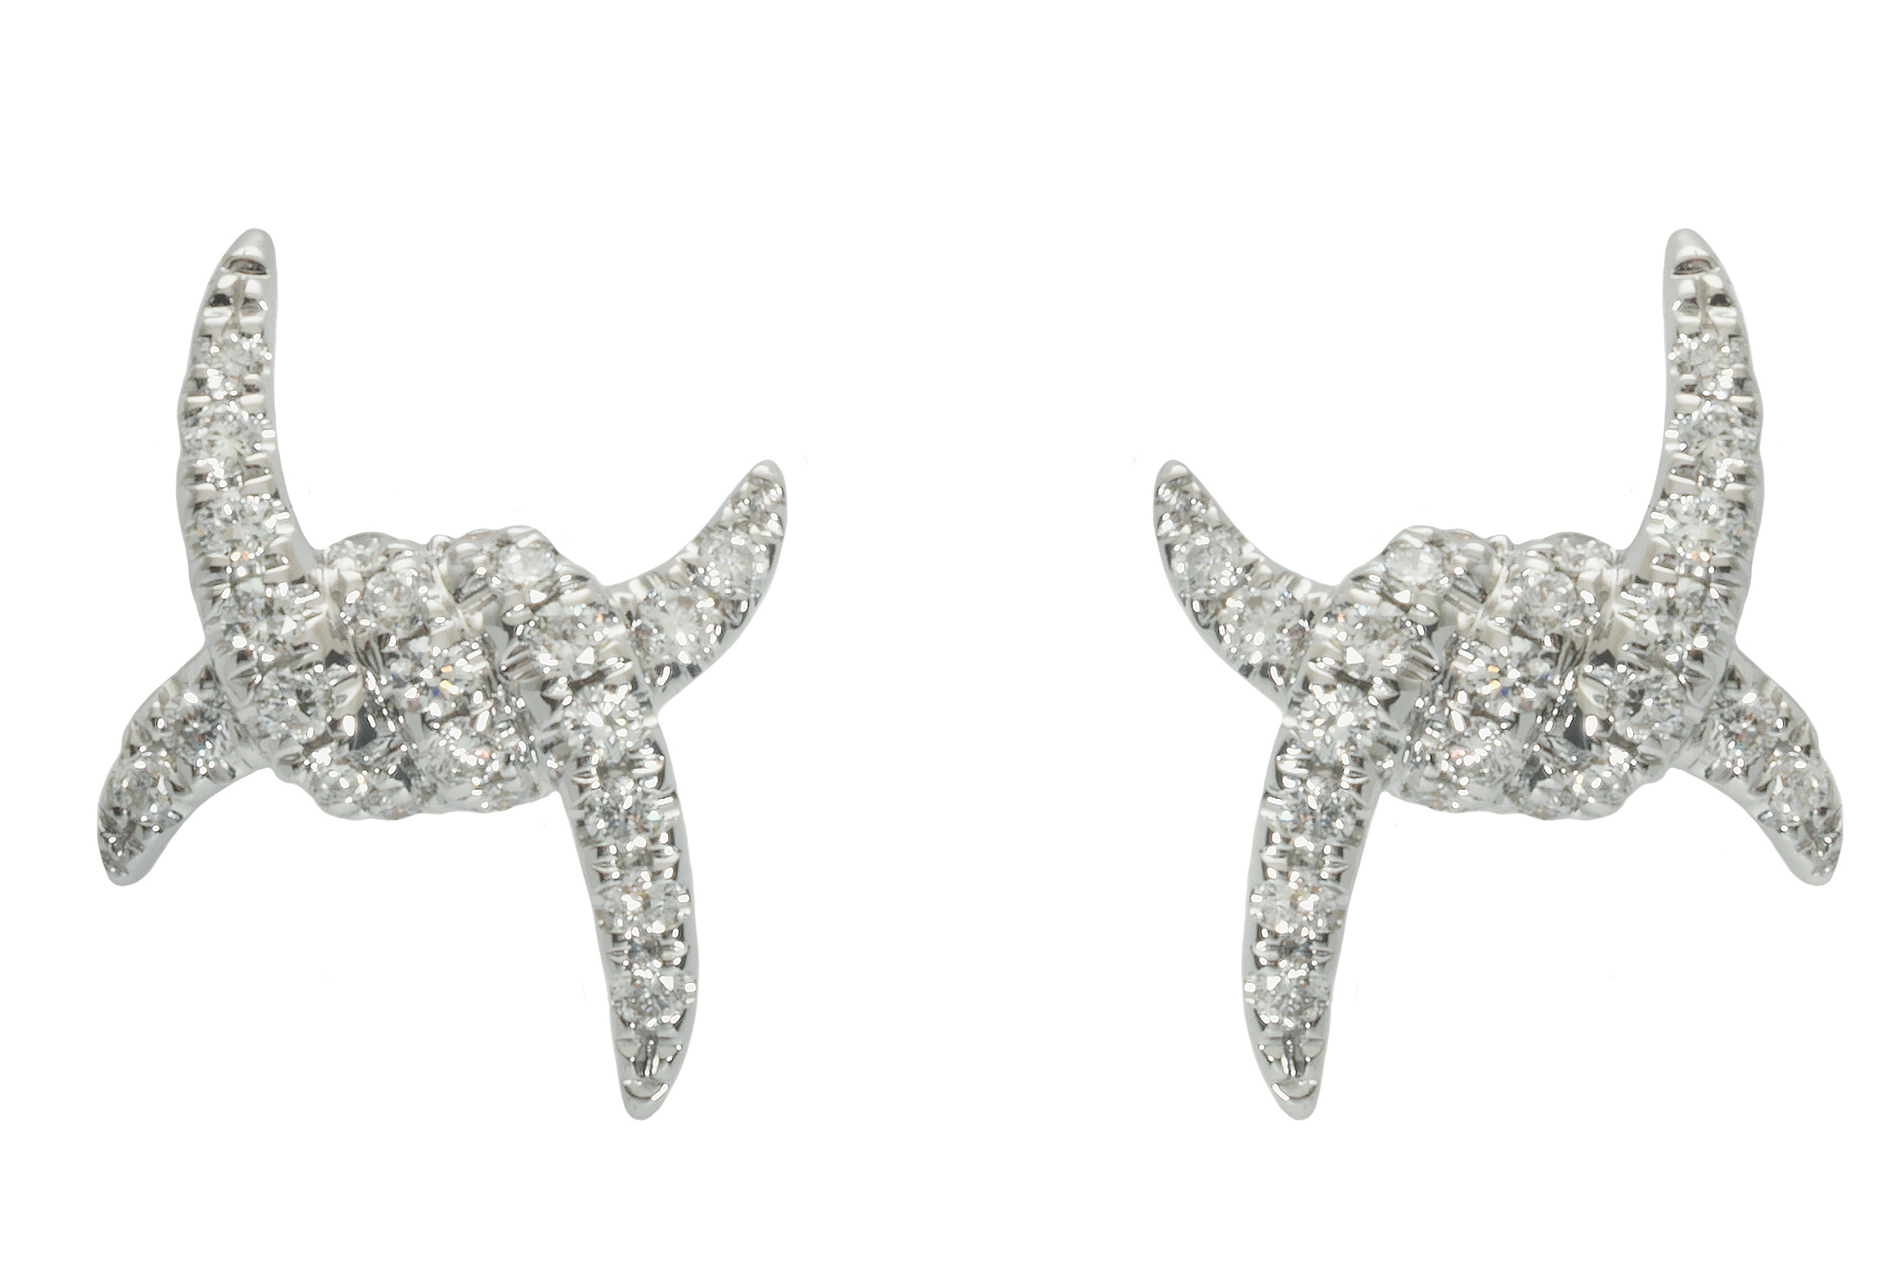 Small but Mighty: Tiny Earrings to Wear in Groups - JCK